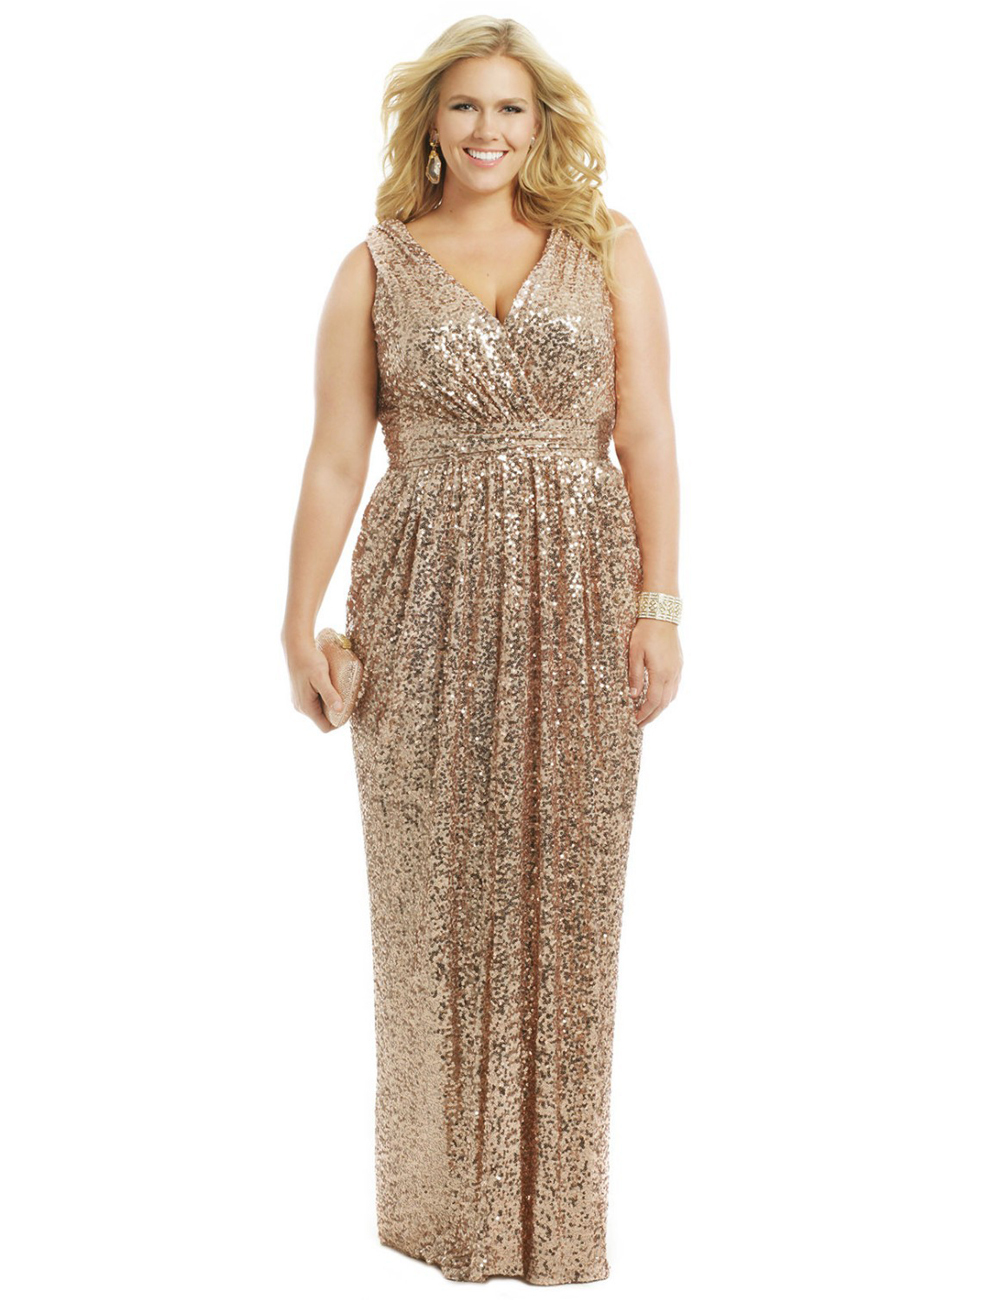 Popular Gold Sequin Prom Dresses-Buy Cheap Gold Sequin Prom ...